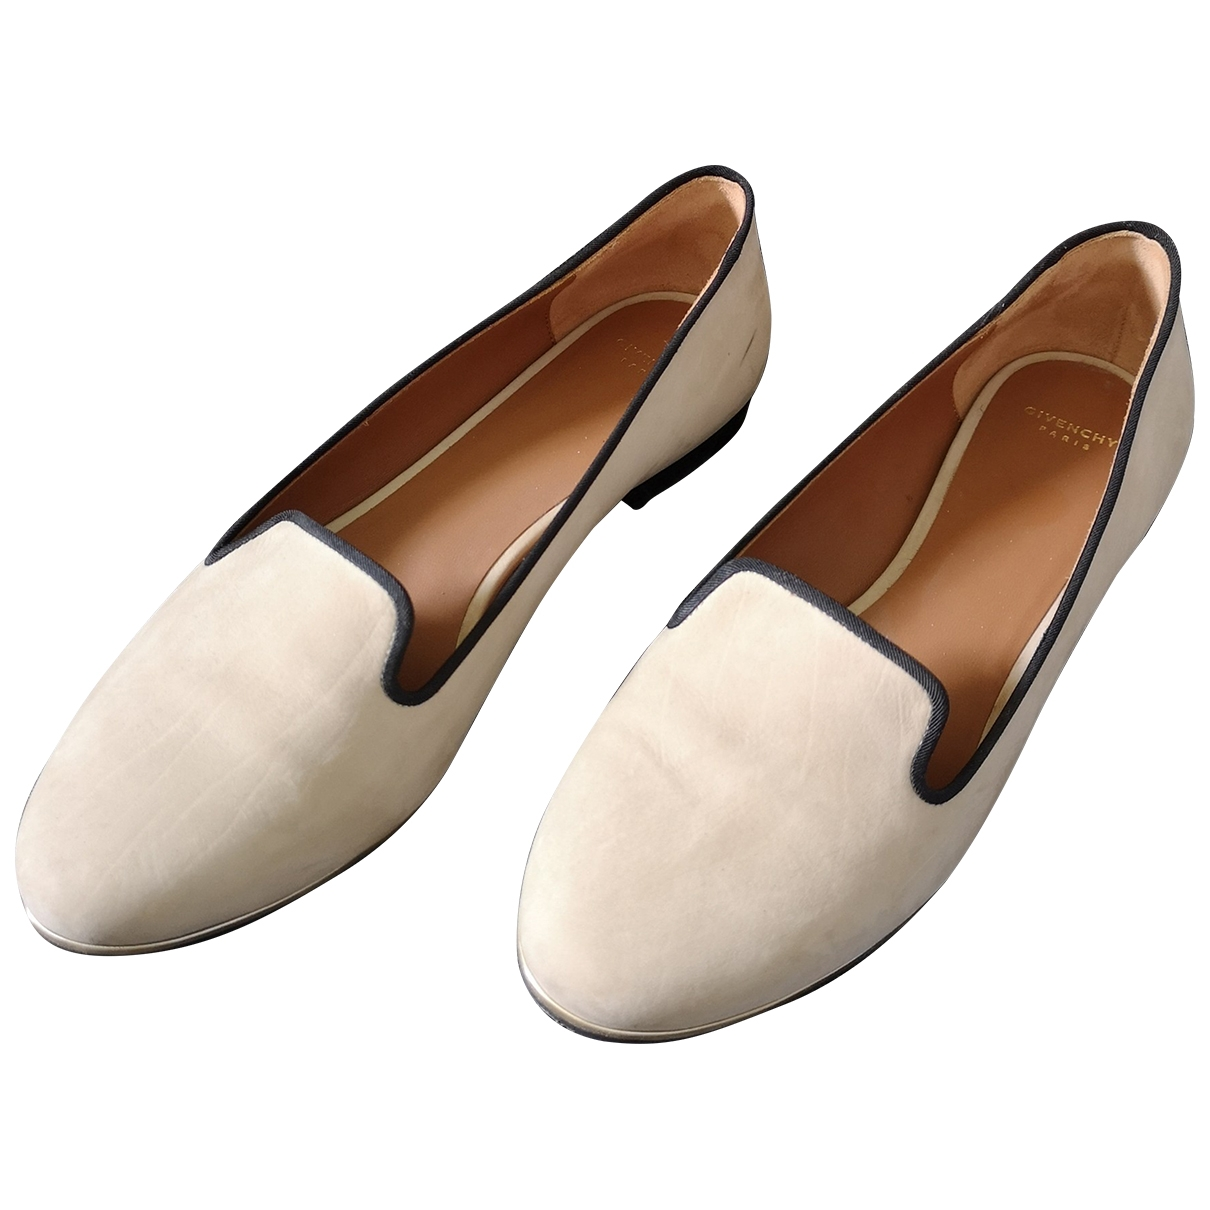 Givenchy \N Beige Leather Flats for Women 37 EU